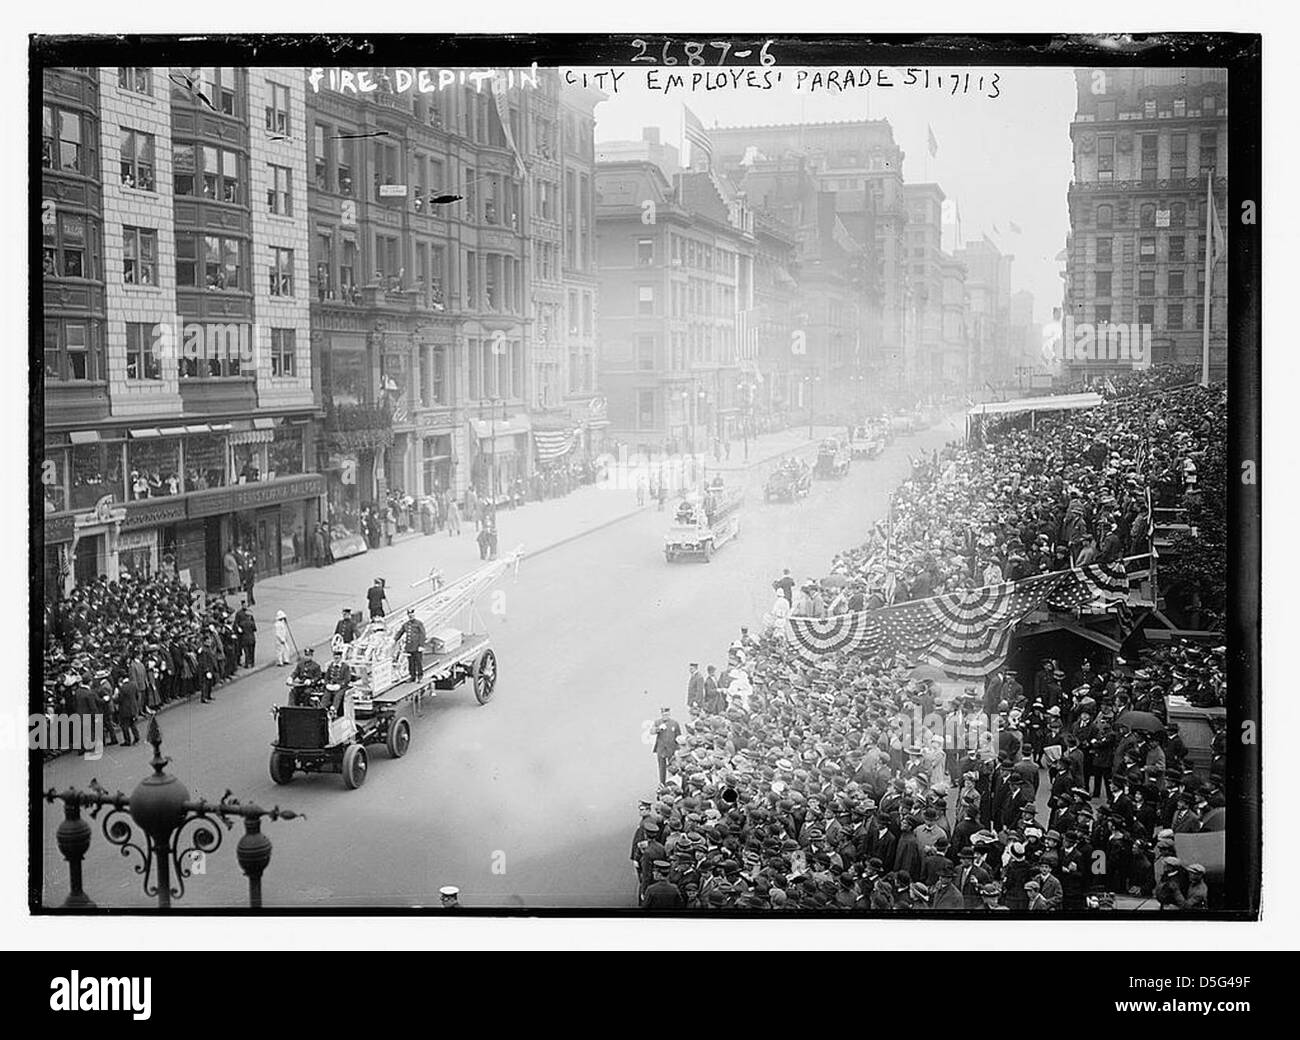 Fire Dept. in City Employees' parade, N.Y., 5/17/13 (LOC) - Stock Image